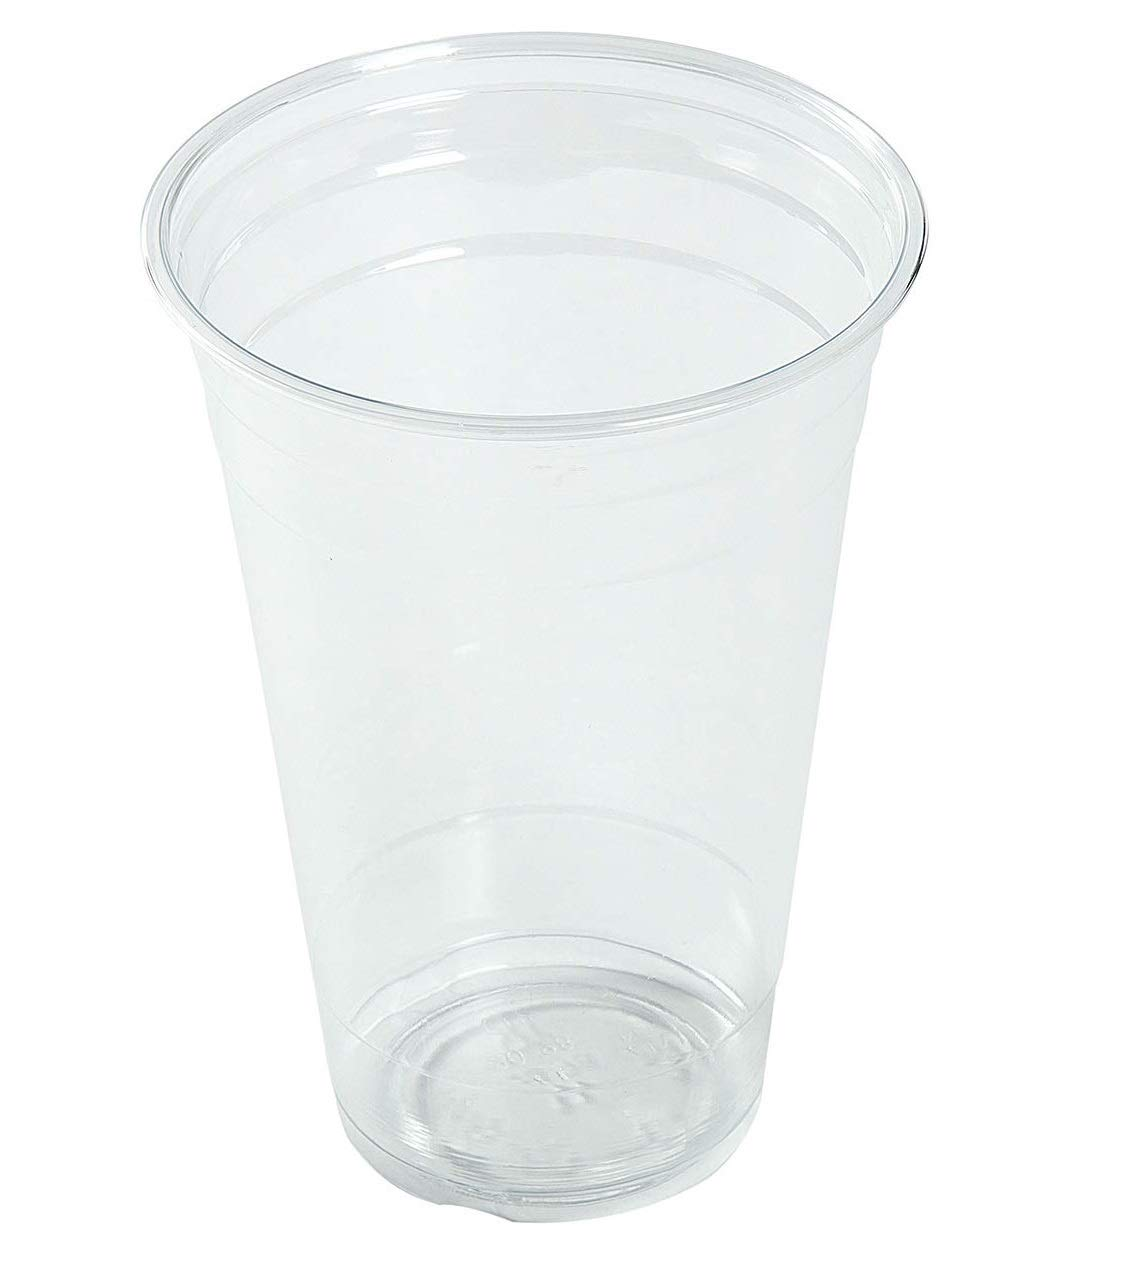 [200 Count] 16oz Clear Plastic Disposable Cups - Premium 16 oz (Ounces) Crystal Clear PET Cup (No Lids) for Cold Drinks Iced Coffee Tea Juices Smoothies Slush Soda Cocktails Beer Sundae Kids Safe